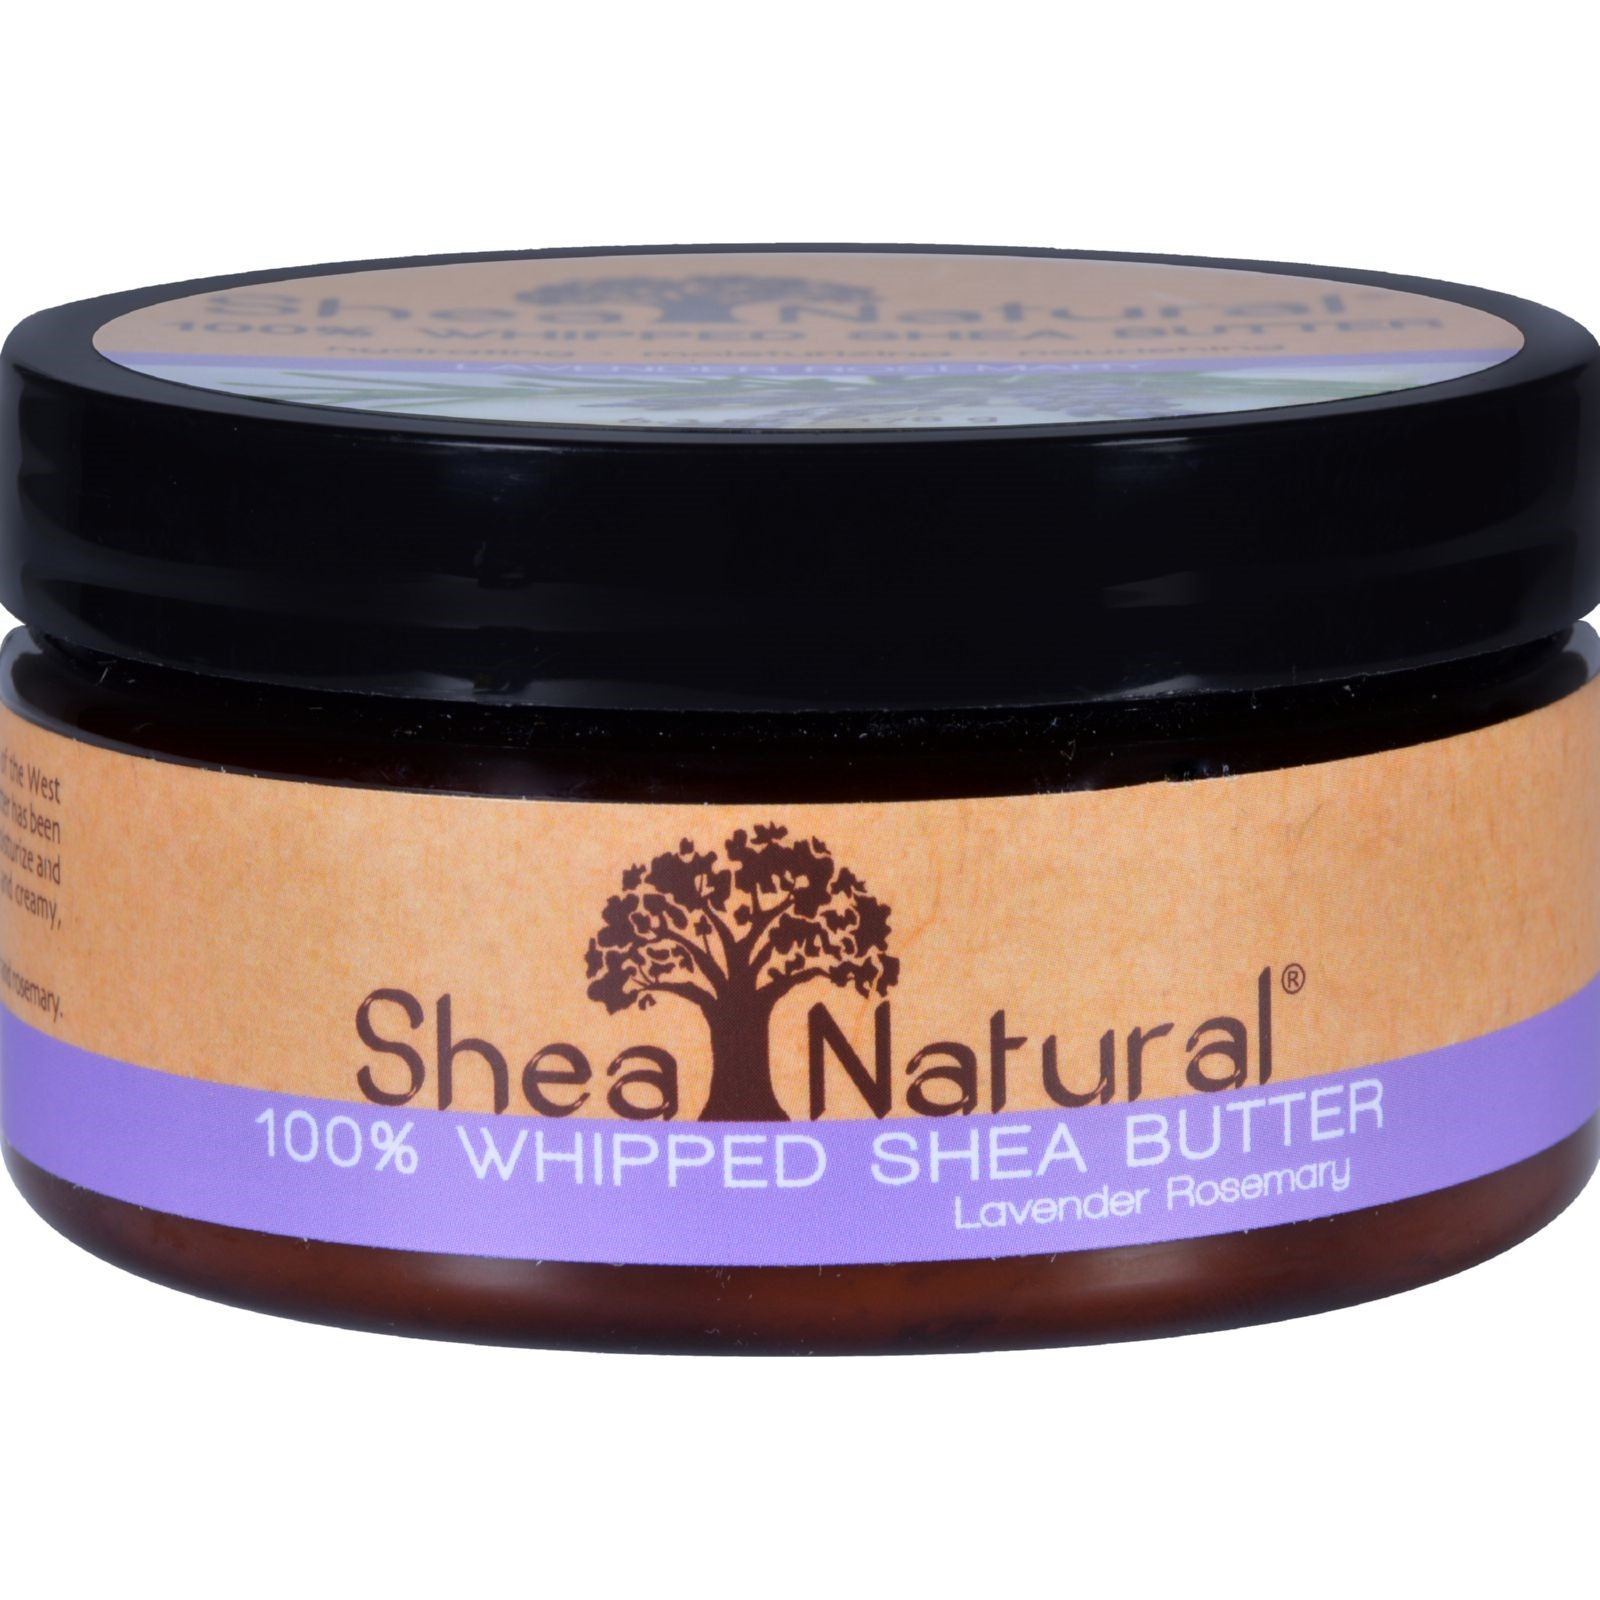 Shea Natural Shea Butter, Lavender Rosemary, 6.3 Oz